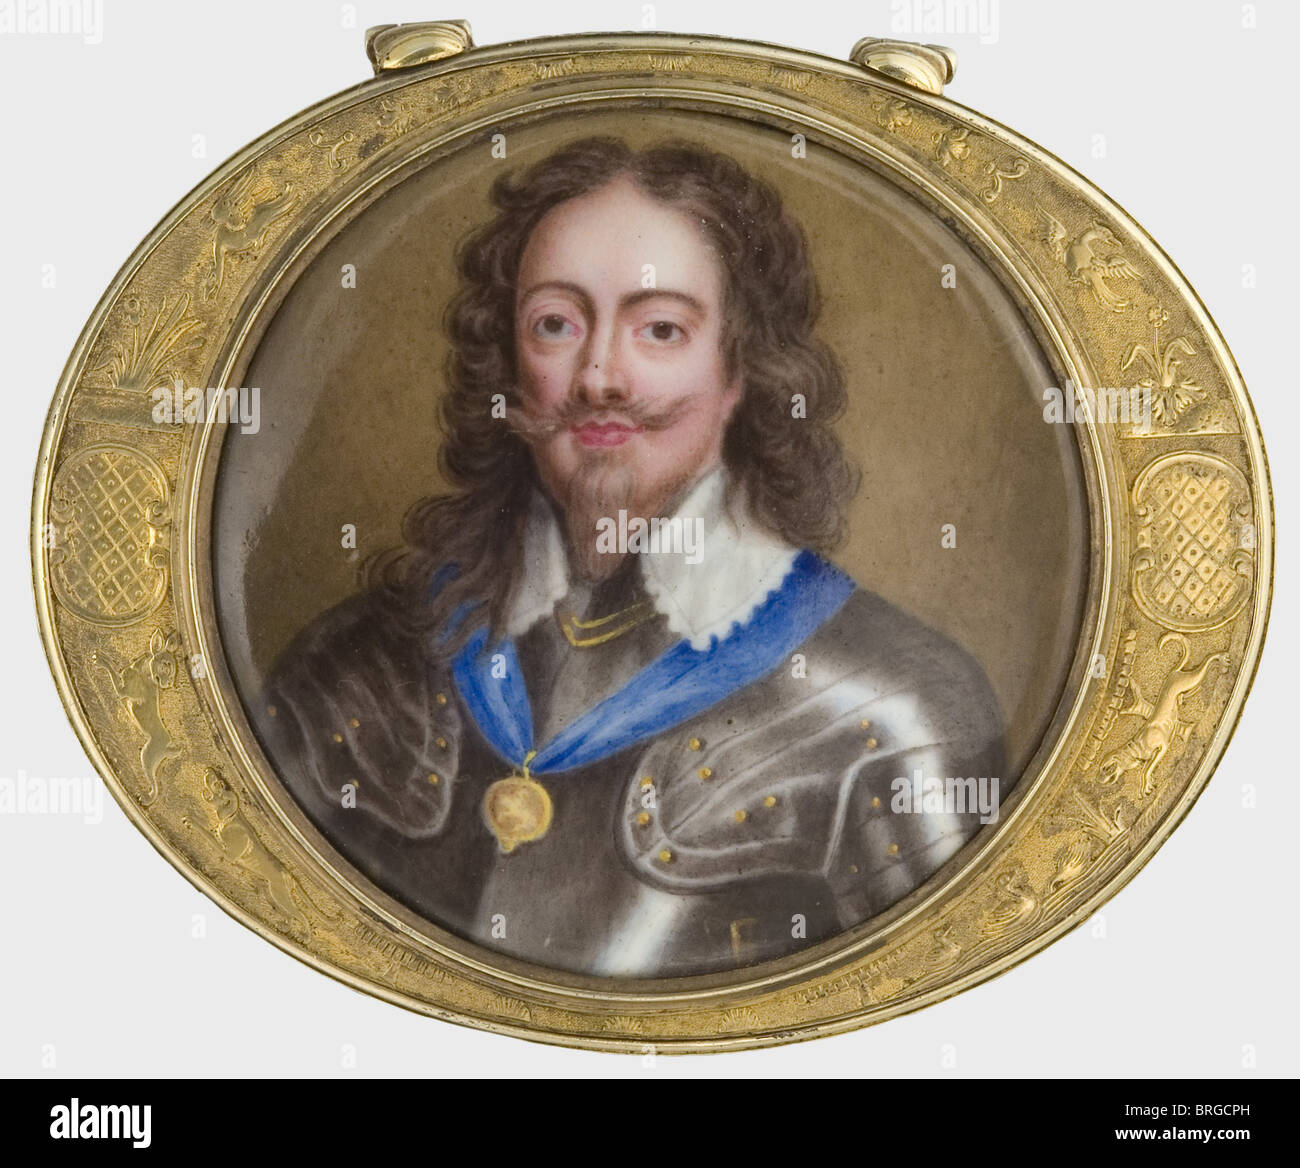 King Charles I (1600 - 1649), a miniature box, England, middle of the 18th century Oval snuffbox, silver, gilded. - Stock Image